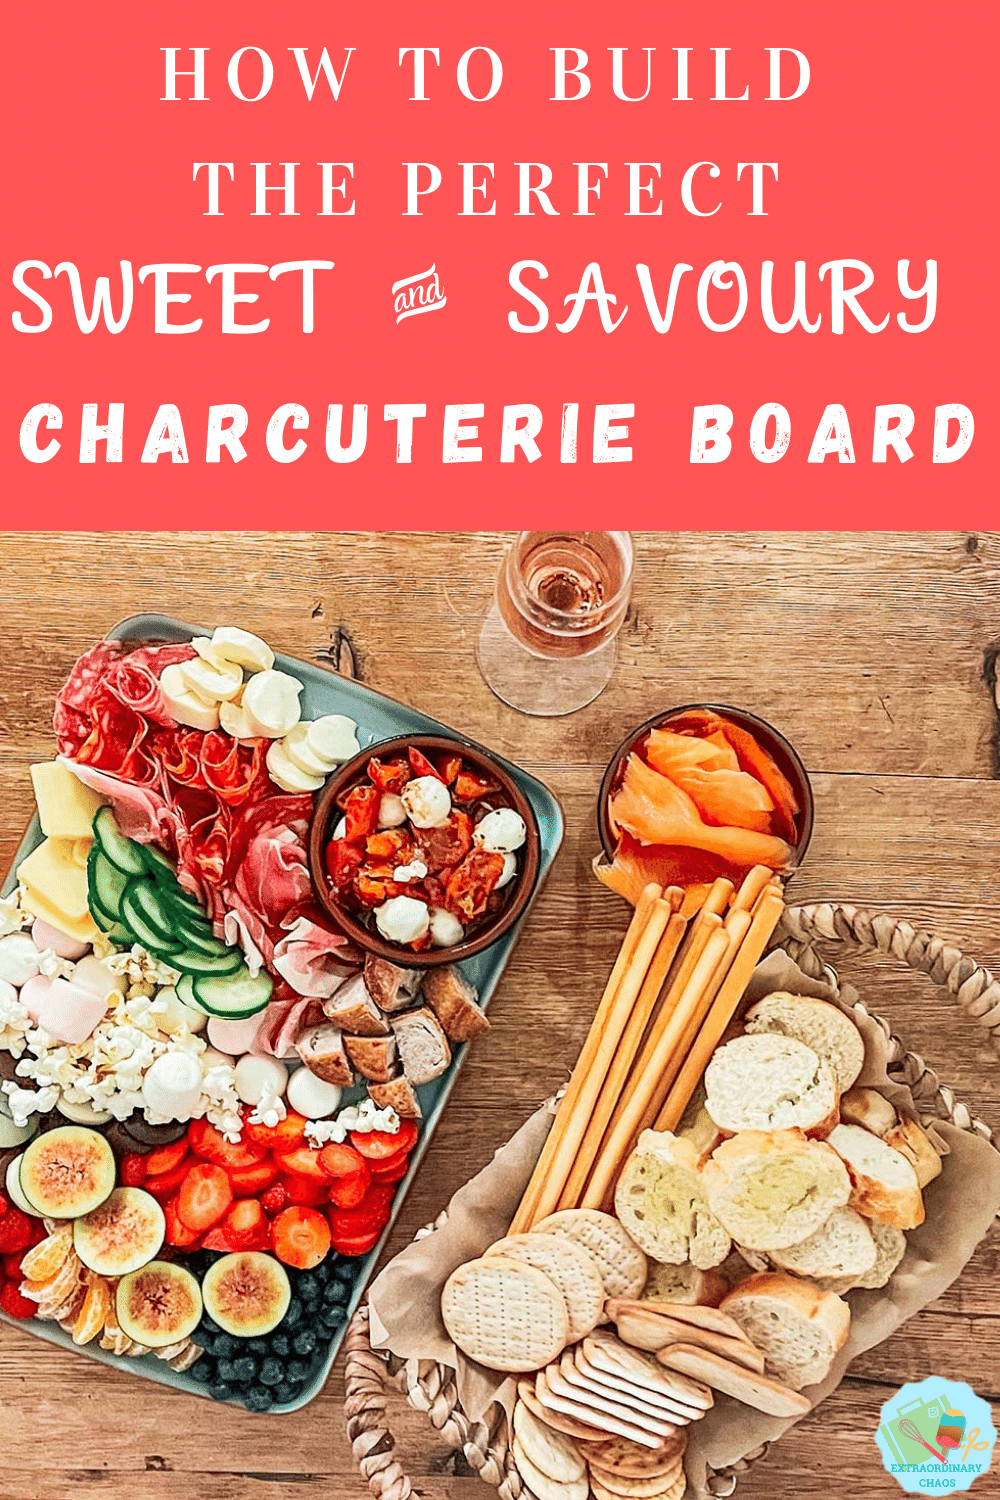 How to build the perfect charcuterie board to suit the whole family when making a family sweet and savoury sharing platter